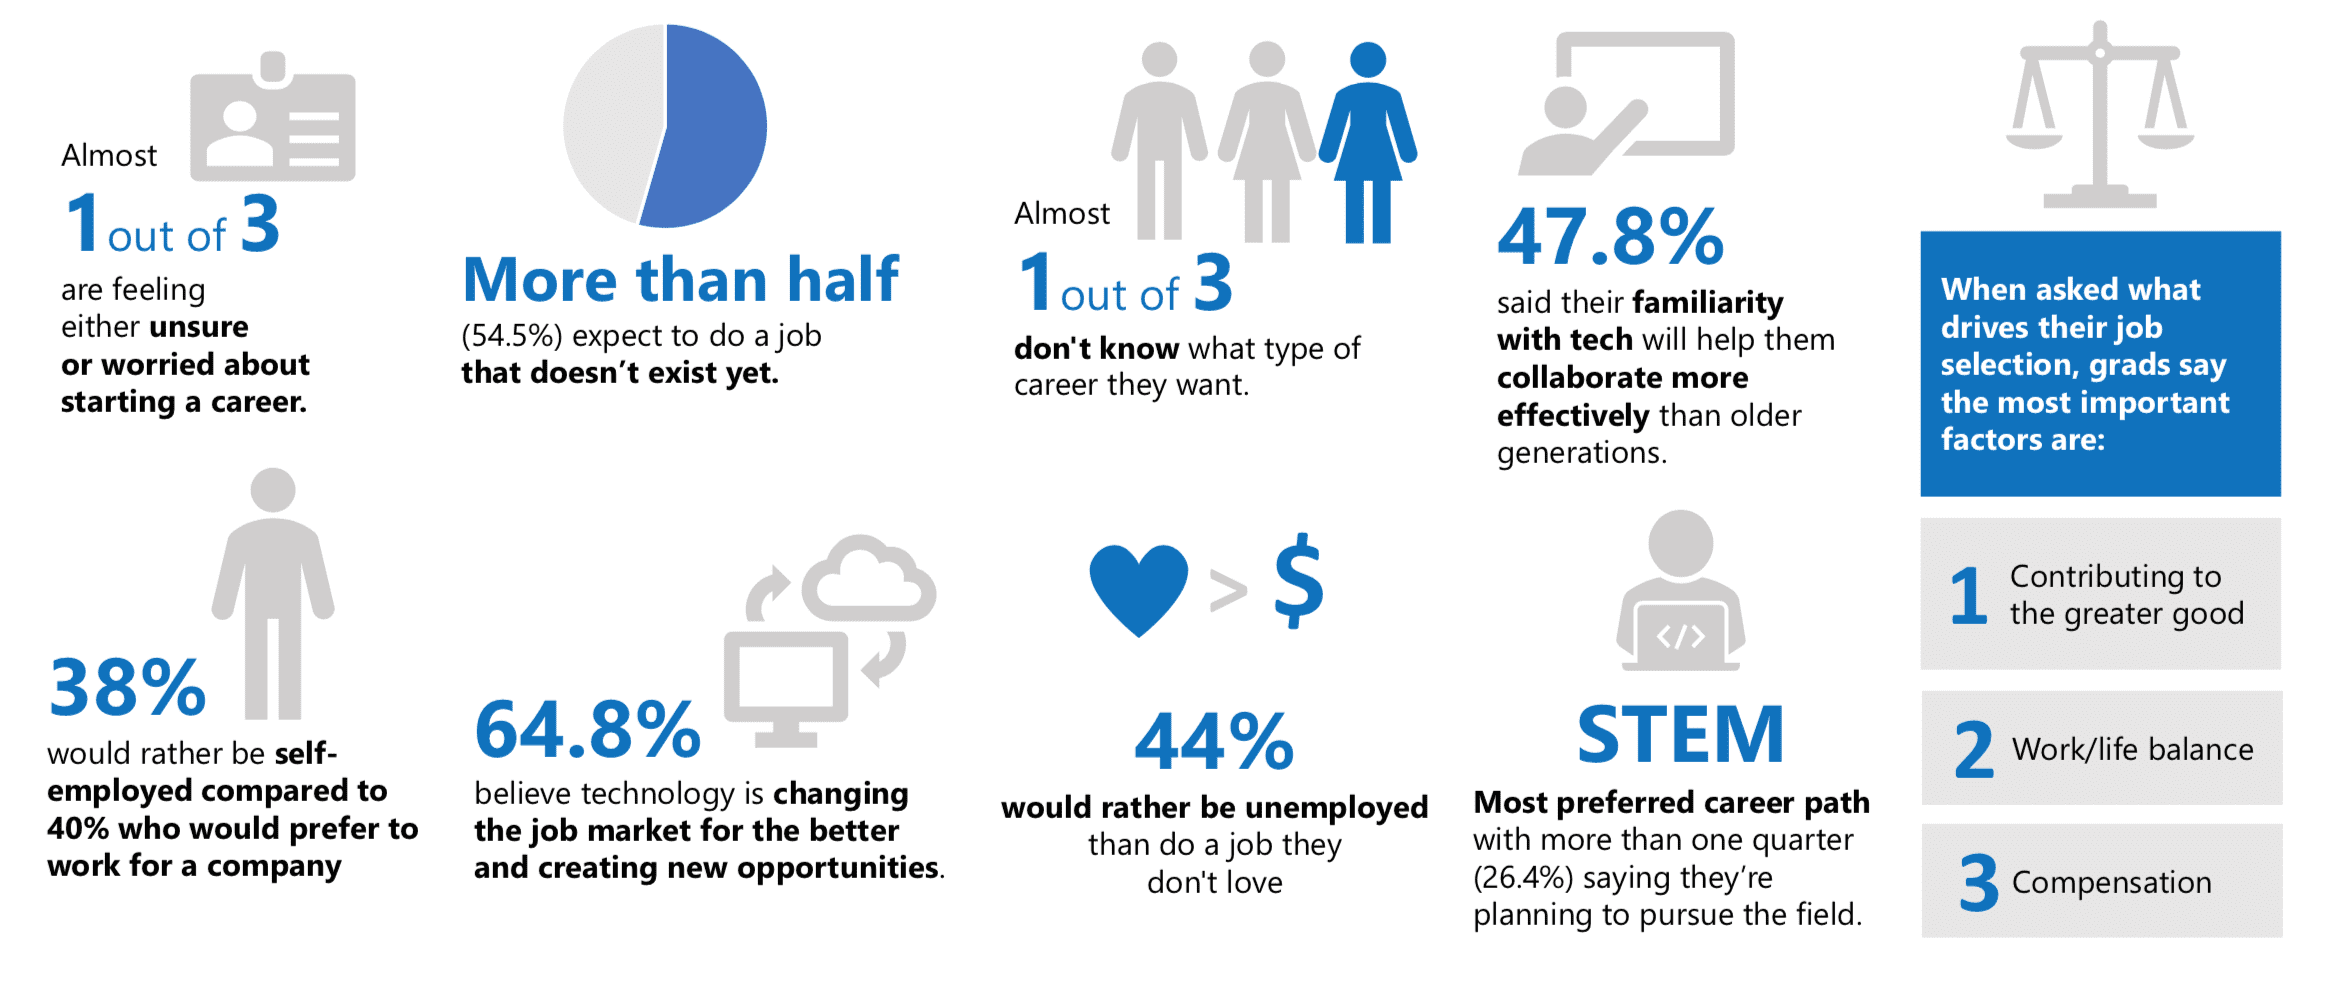 Image of infographic showing 2019 survey responses of Gen Z students